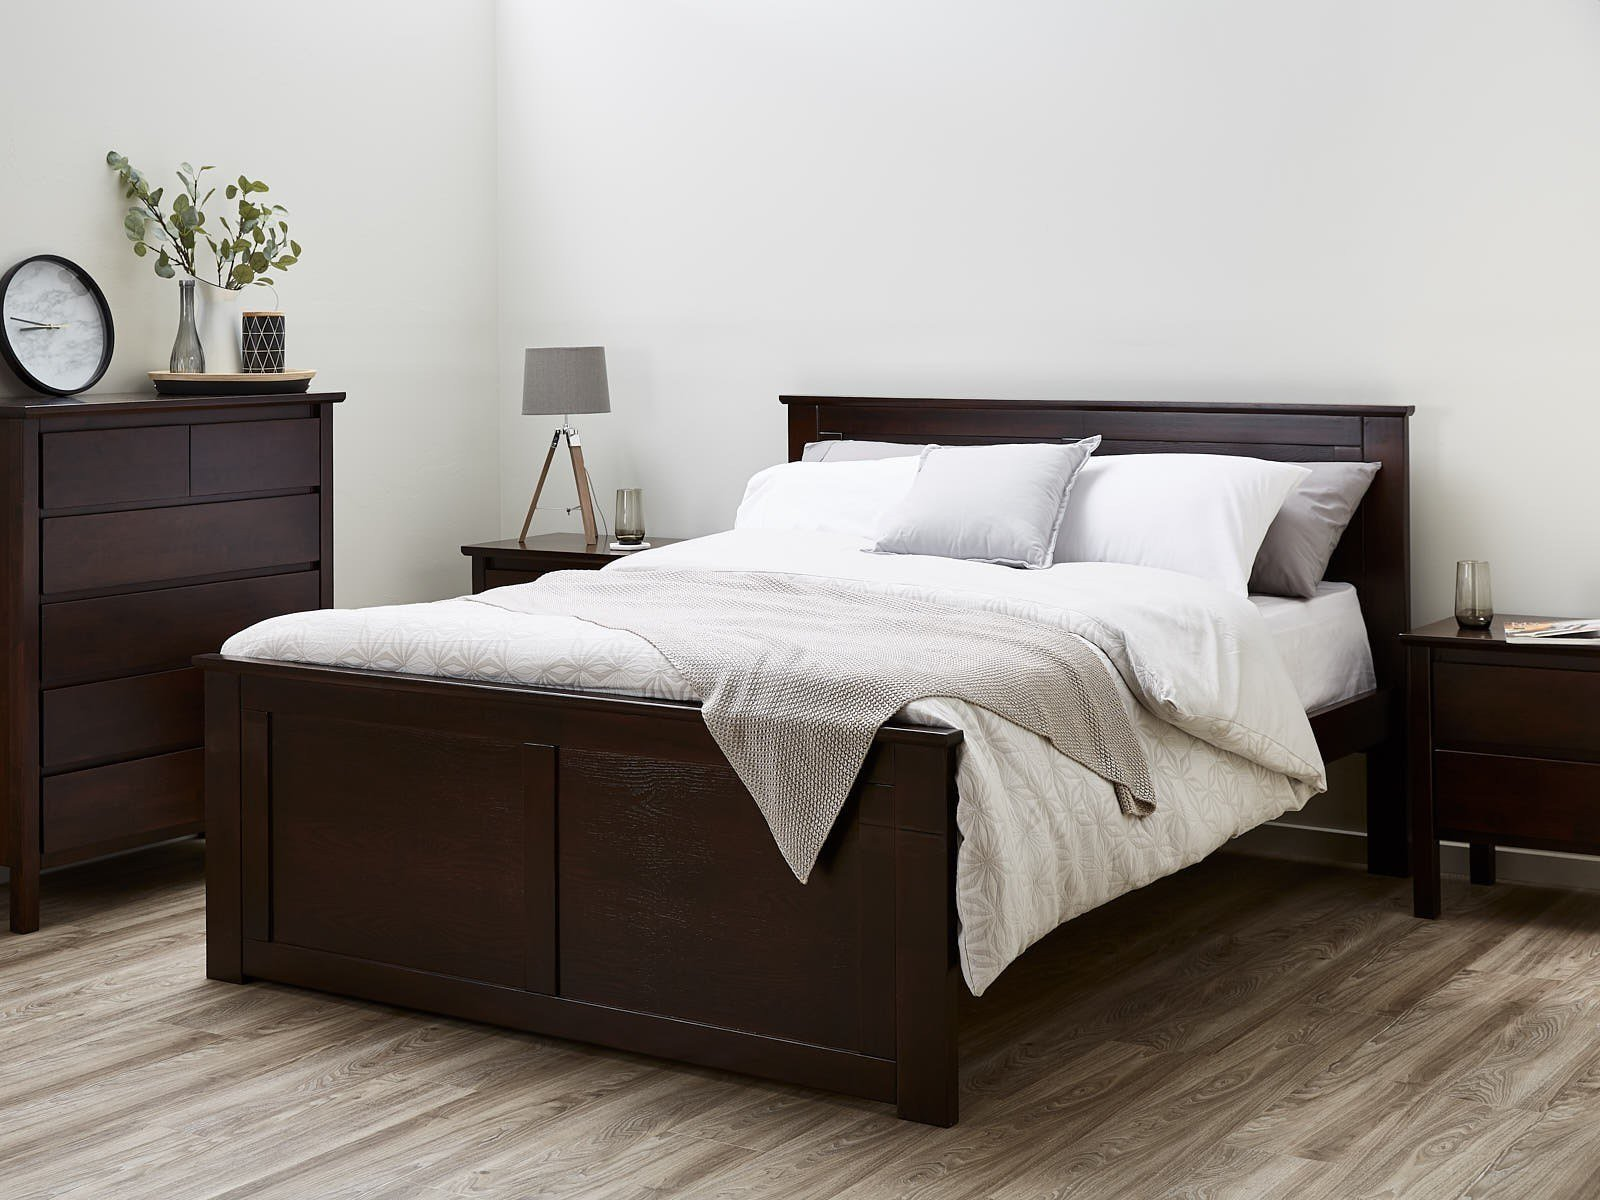 Best Queen Size Bed Frames 50 75 Off Sale B2C Furniture With Pictures